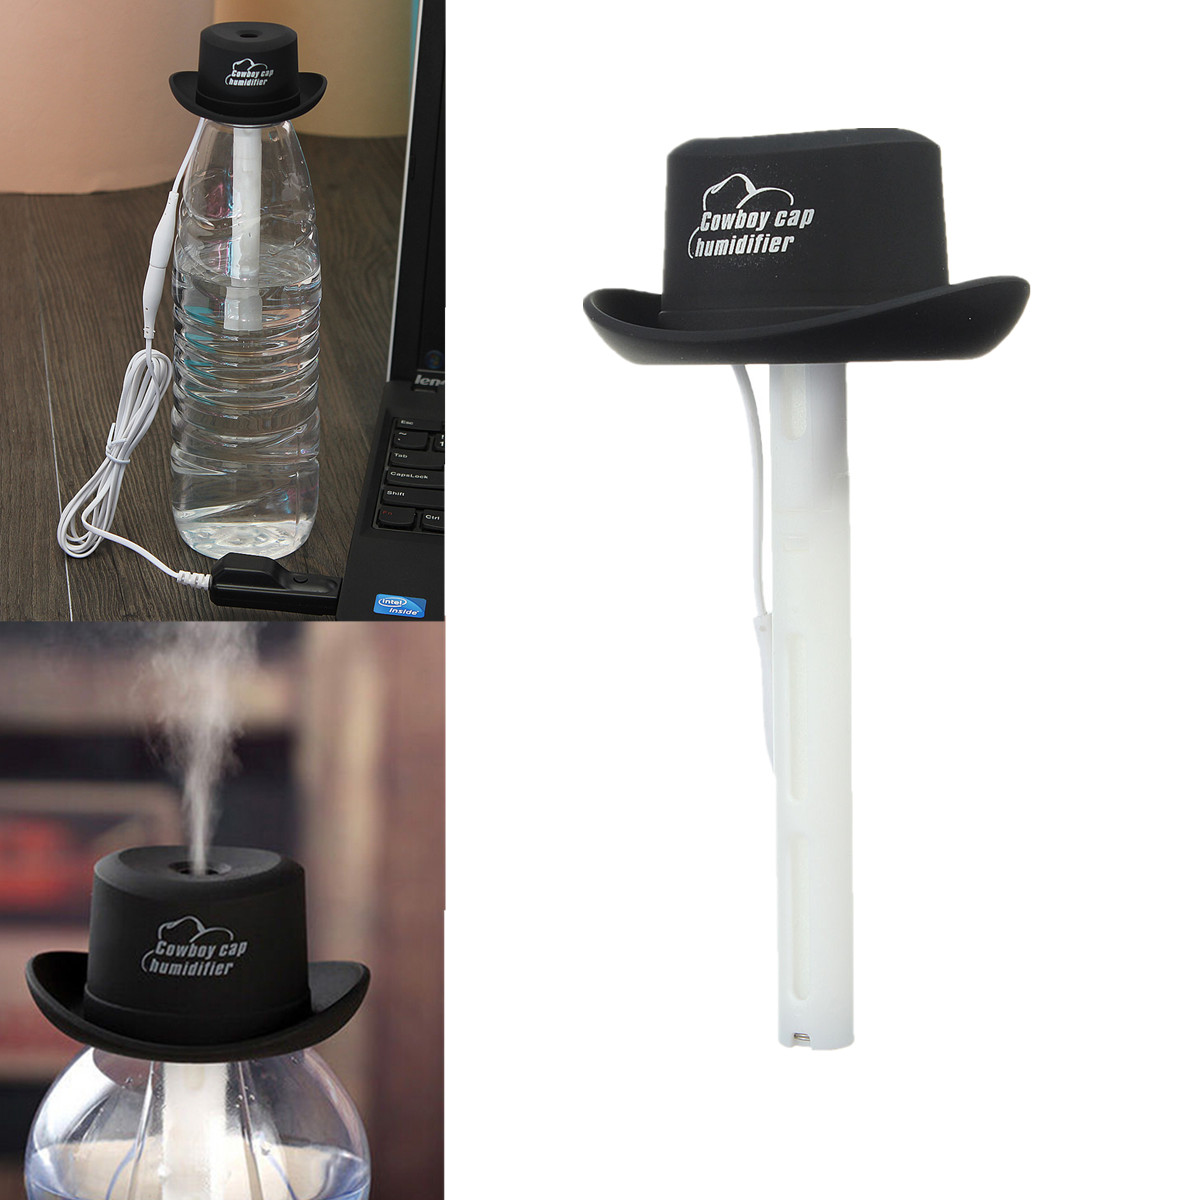 USB Water Bottle Caps Humidifier Aroma Air Diffuser Mist Maker eBay #825E49